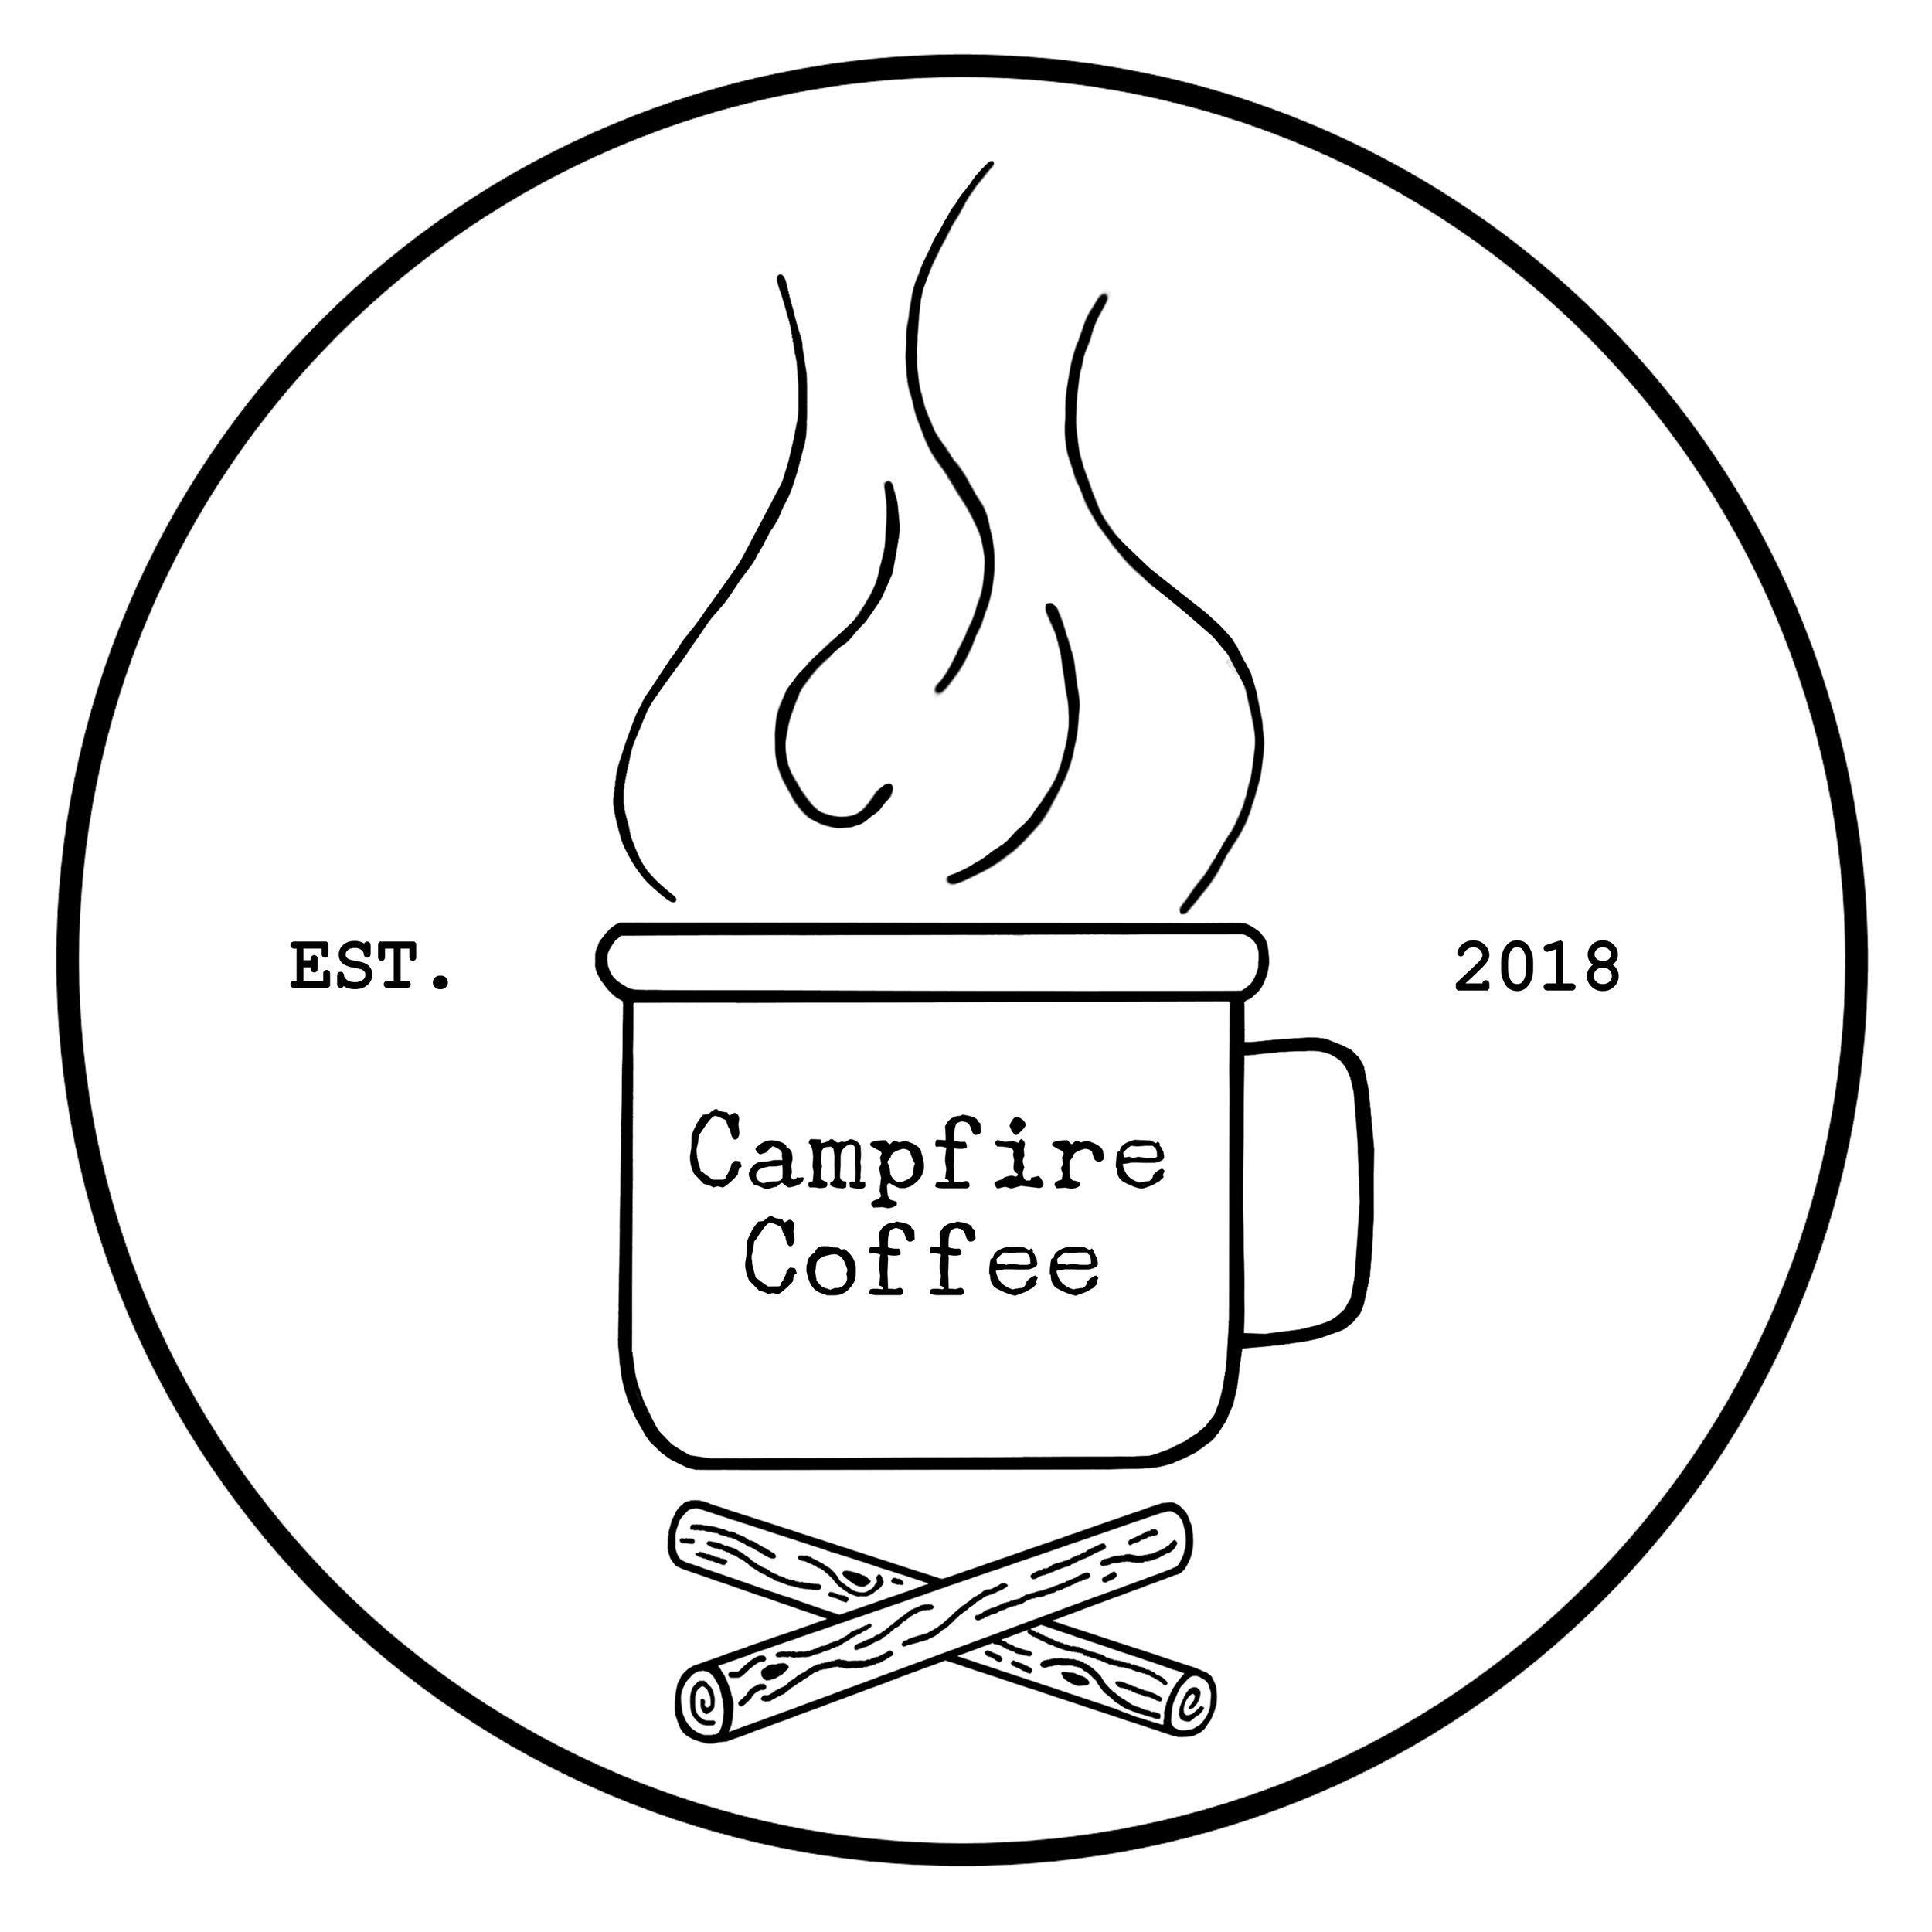 """Where dreams & passion collide - This has been a brain child of ours for the past three years. We prayed that someone would open a coffee shop in our town. We would drive an hour away just to get fresh beans and enjoy the coffee shop atmosphere . Opportunity came knocking and we decided to say """"YES!"""" . It is our hope that Campfire Coffee provides a place to connect and have meaningful conversations like you would gathered around a campfire with friends. ~Chris and Jessica Riley"""